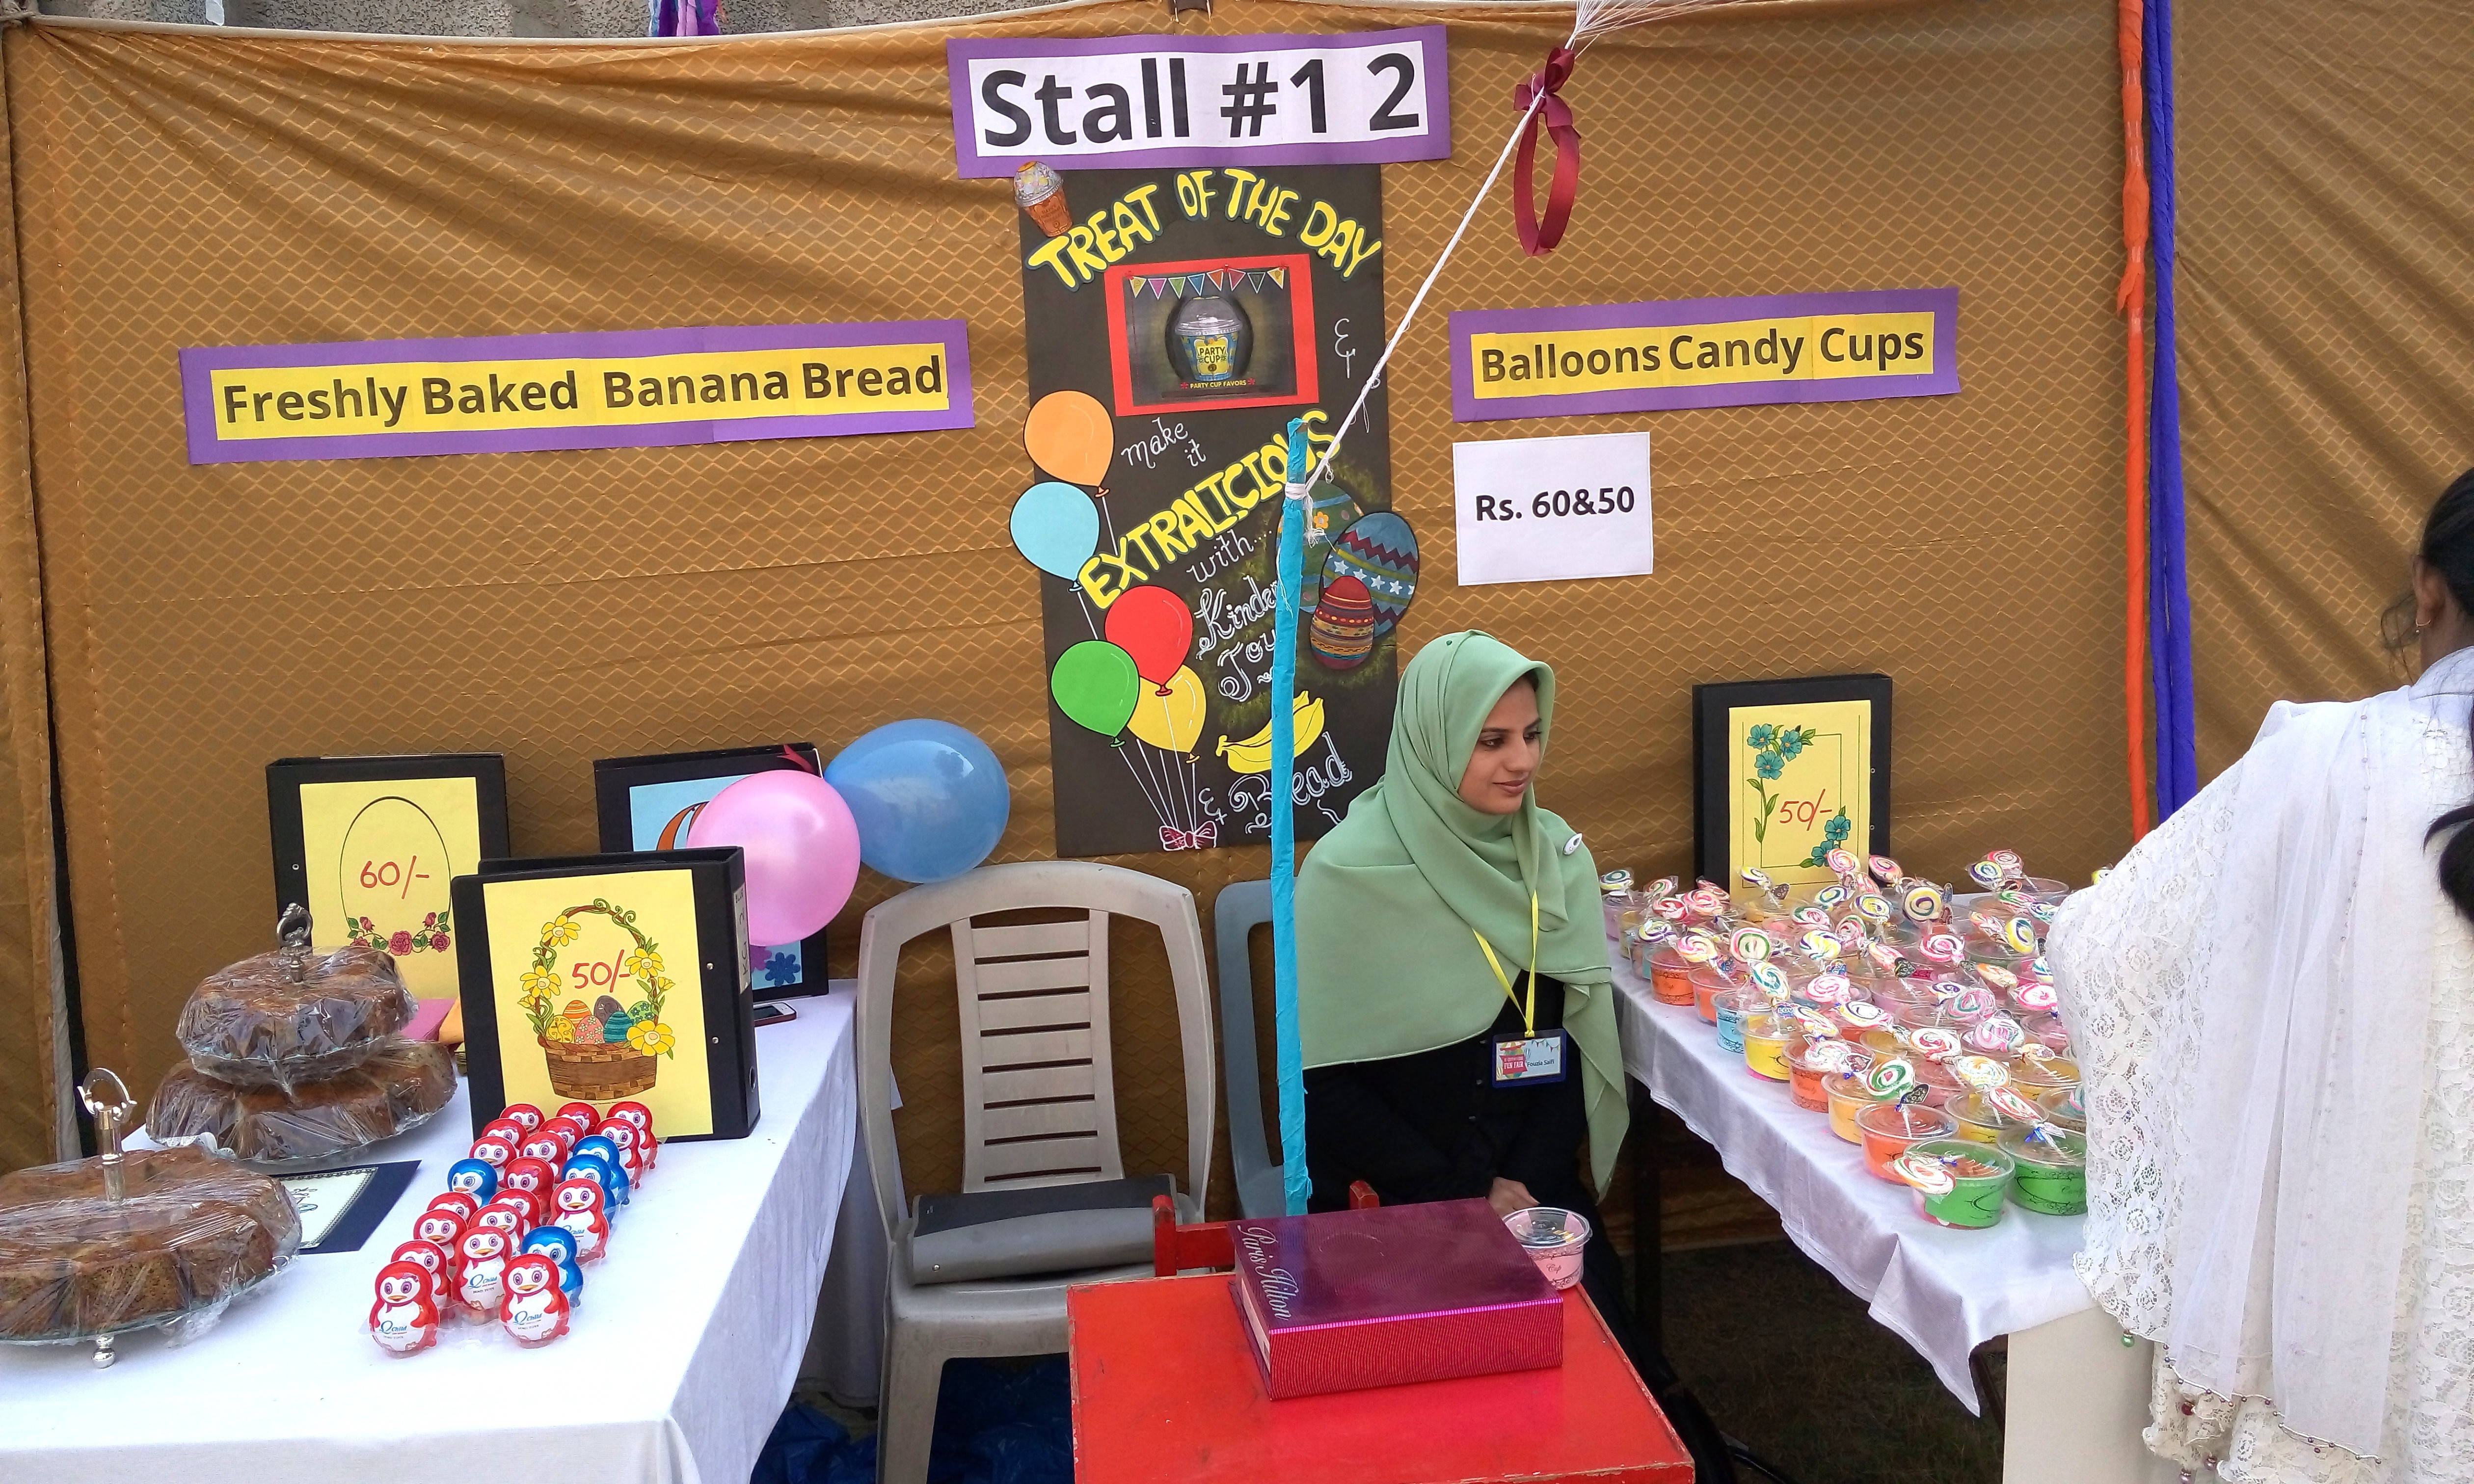 Stall 12 - Freshly Baked Banana Bread, Balloons & Candy Cups